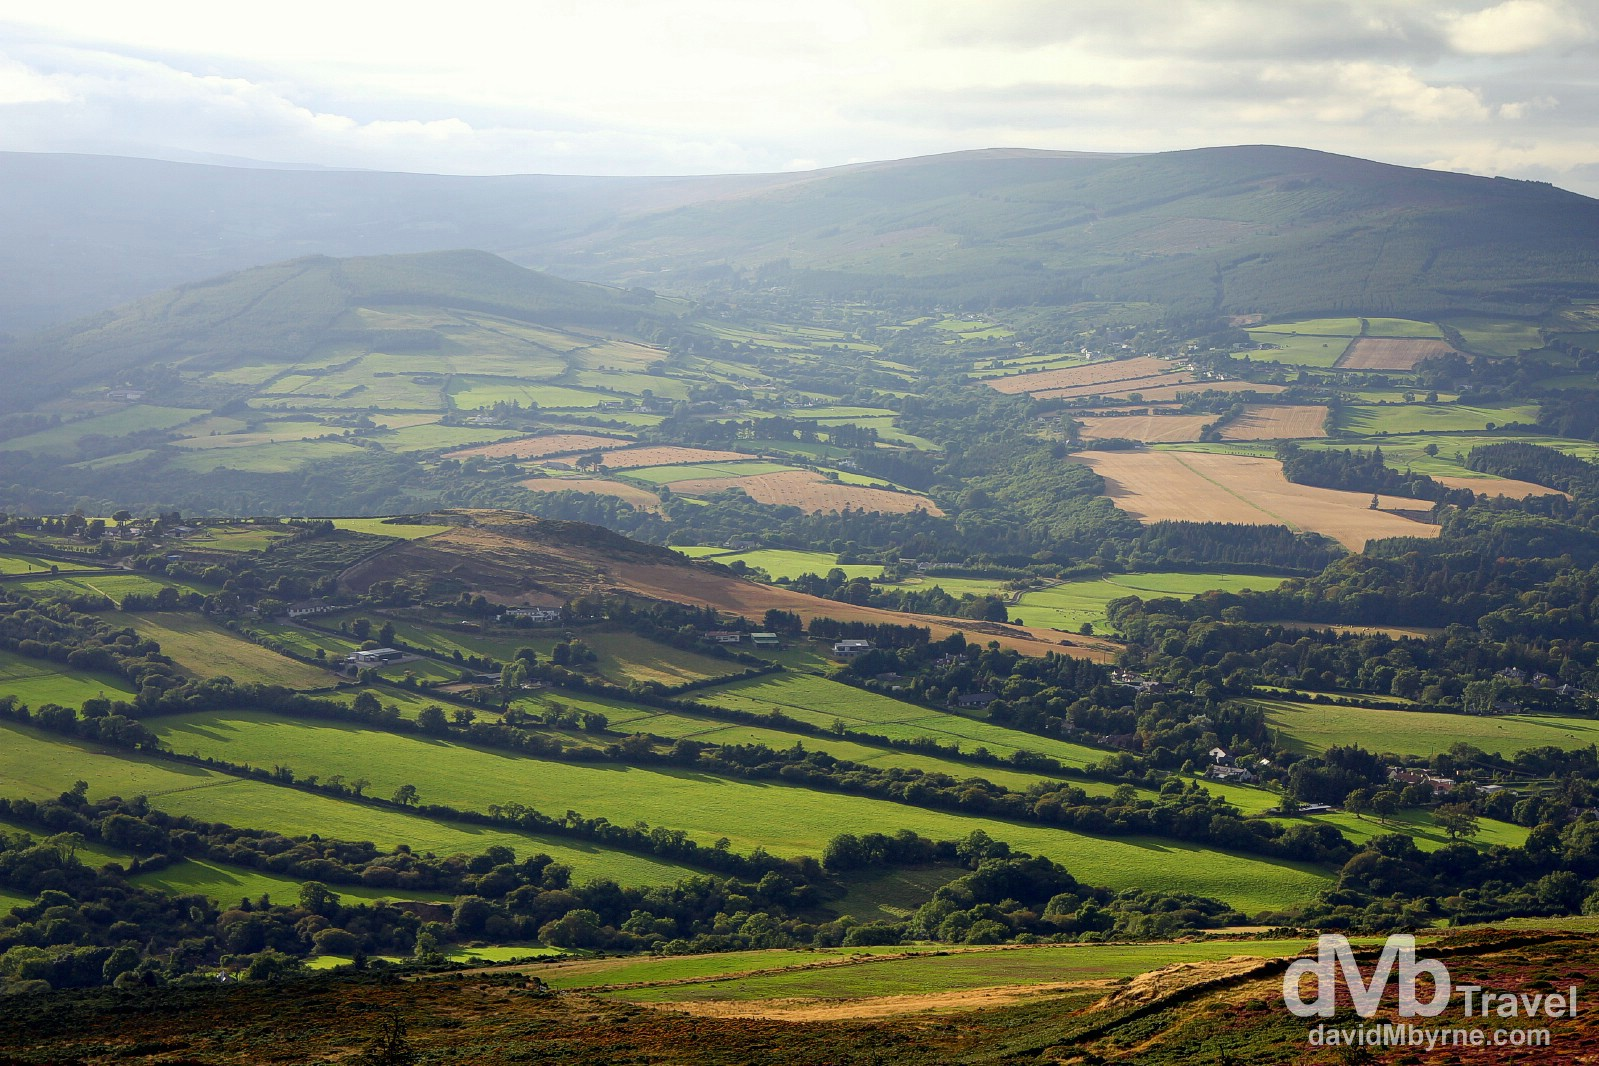 The Wicklow countryside as seen from atop the Sugar Loaf in Co. Wicklow, Ireland. August 31, 2014.